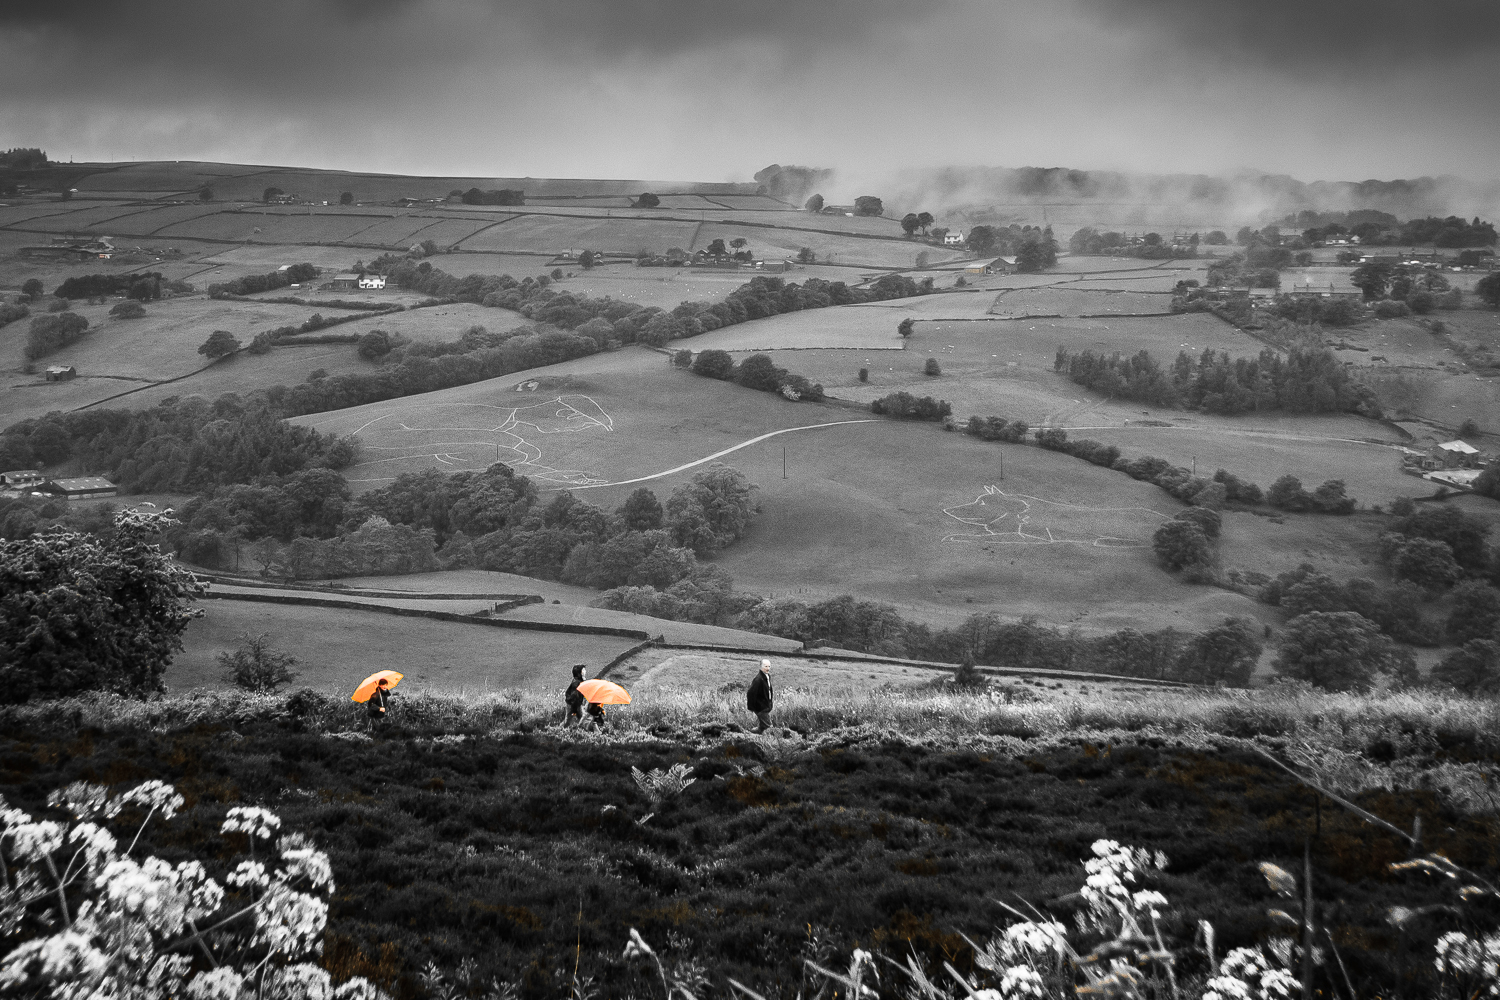 Dash of Orange on a Dull Day (See The Shepherd & The Sheepdog)